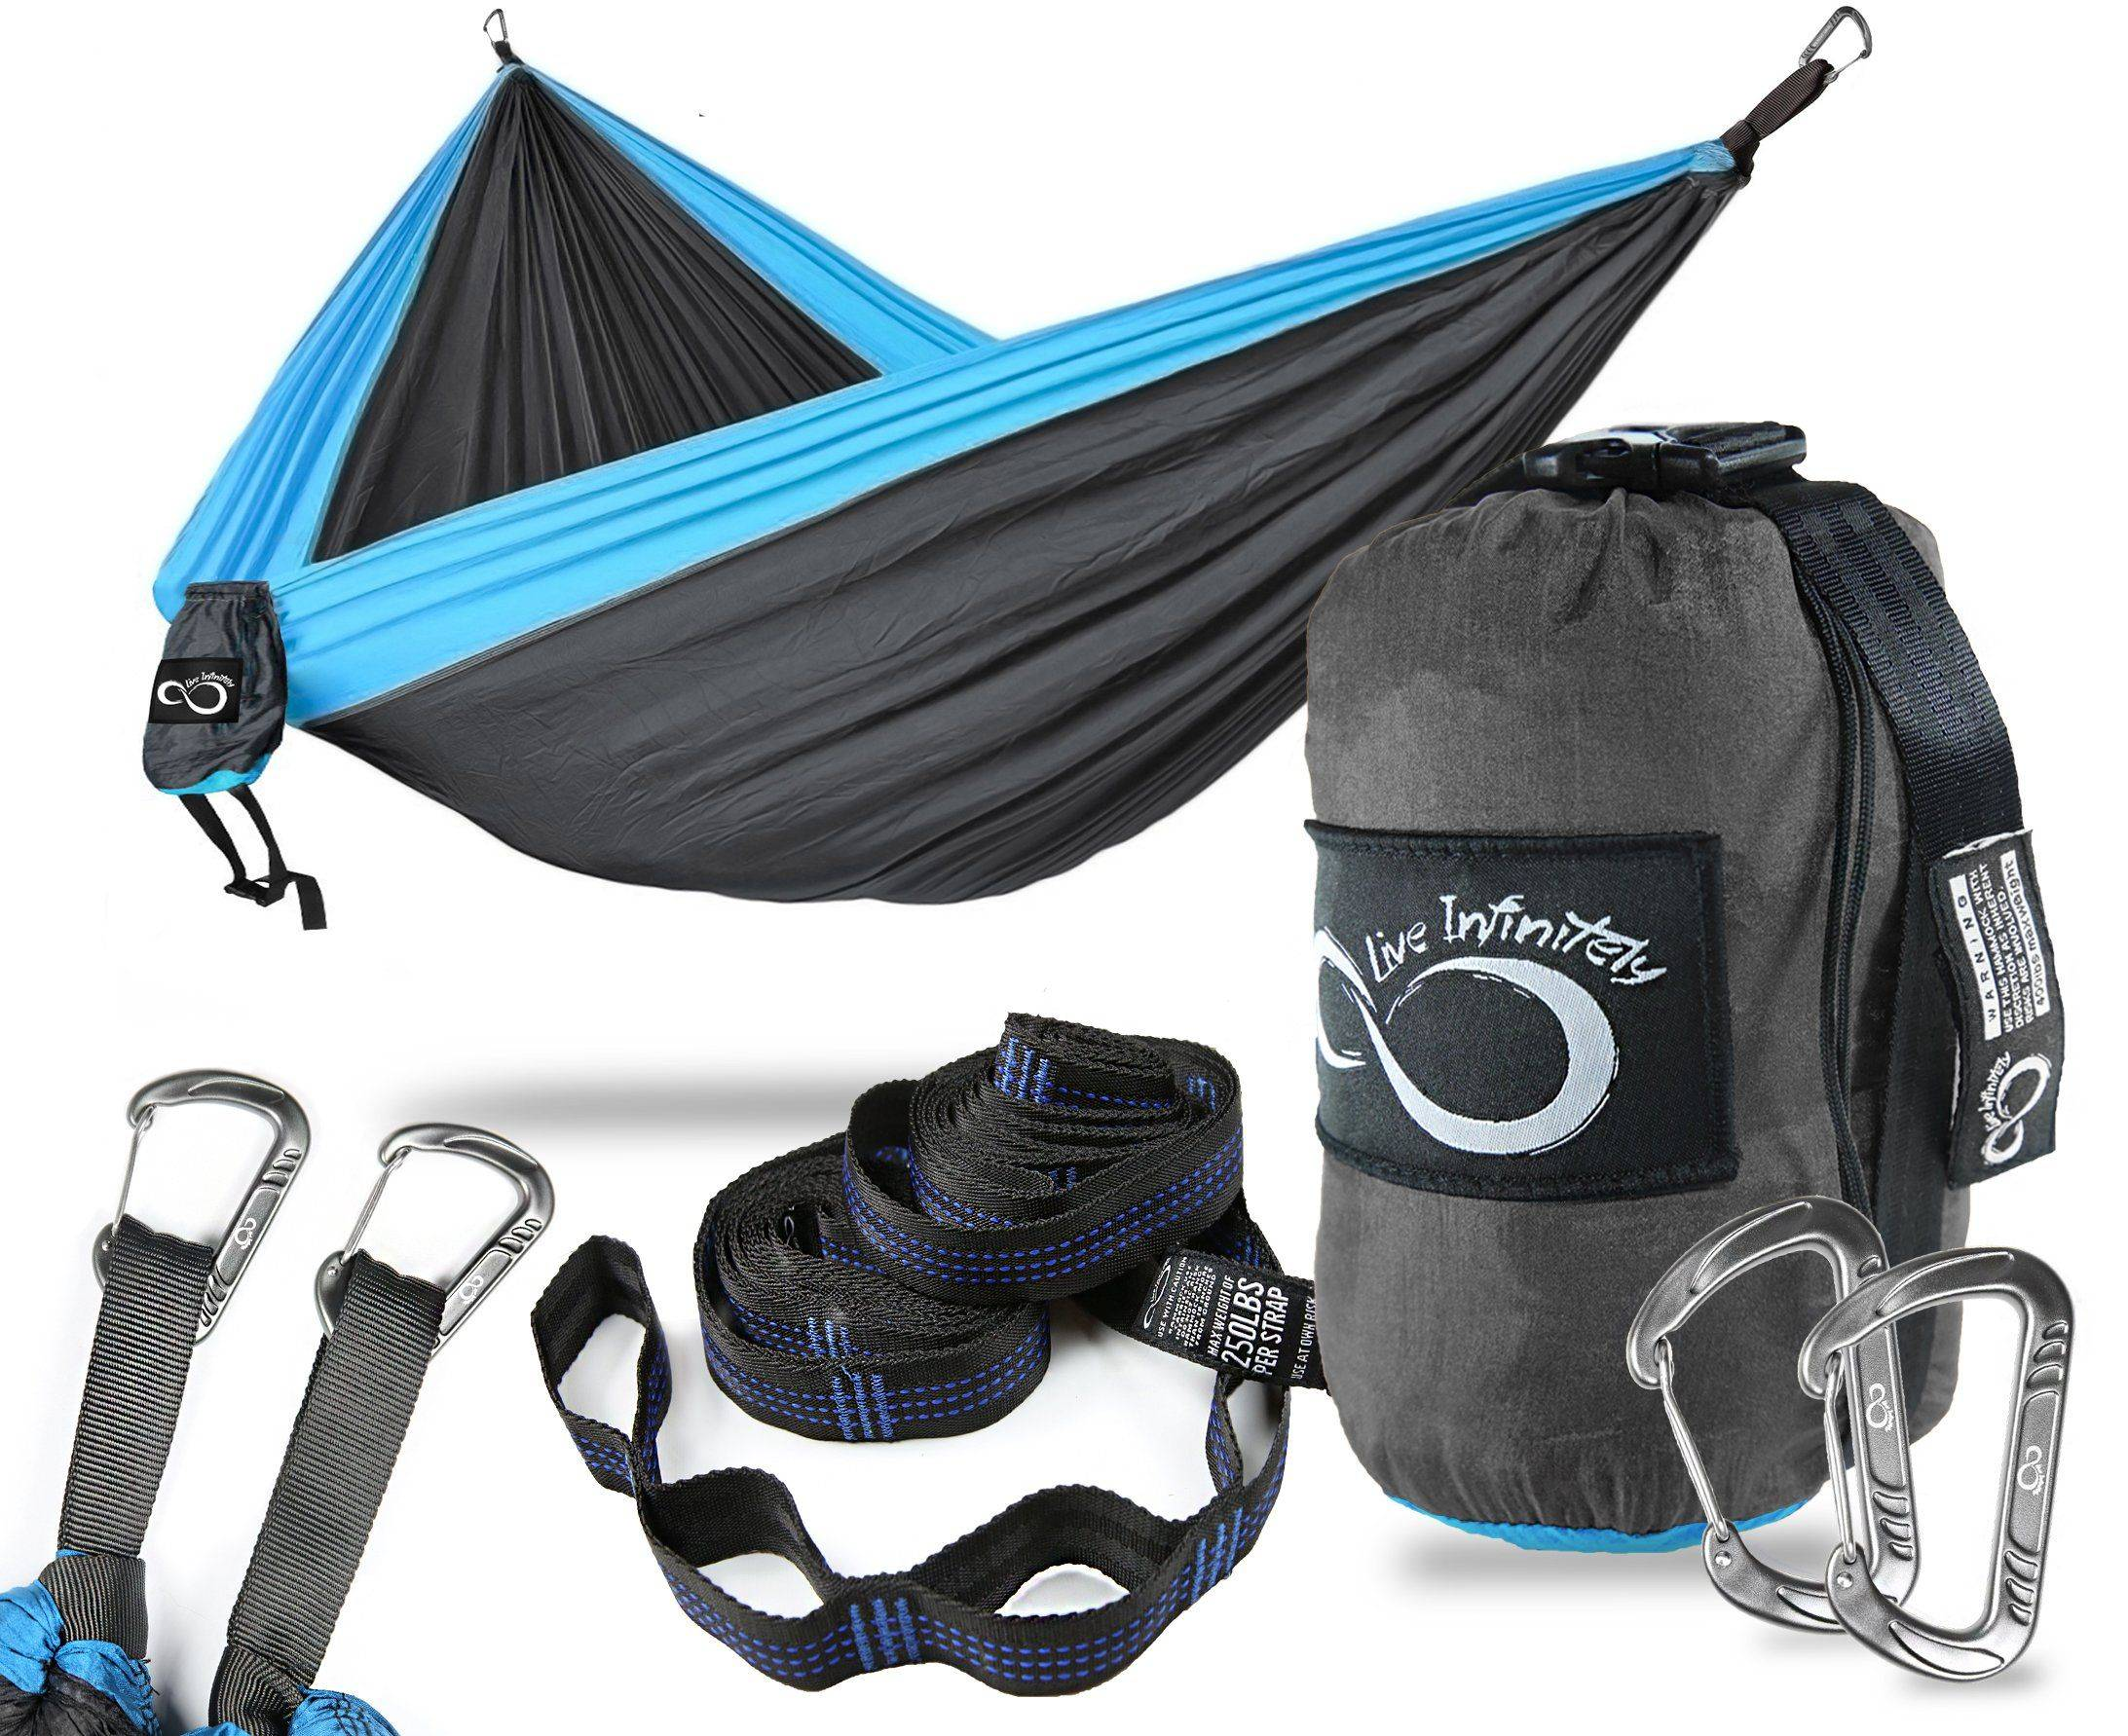 Purple Angel Double Camping Hammock With Upgraded Features